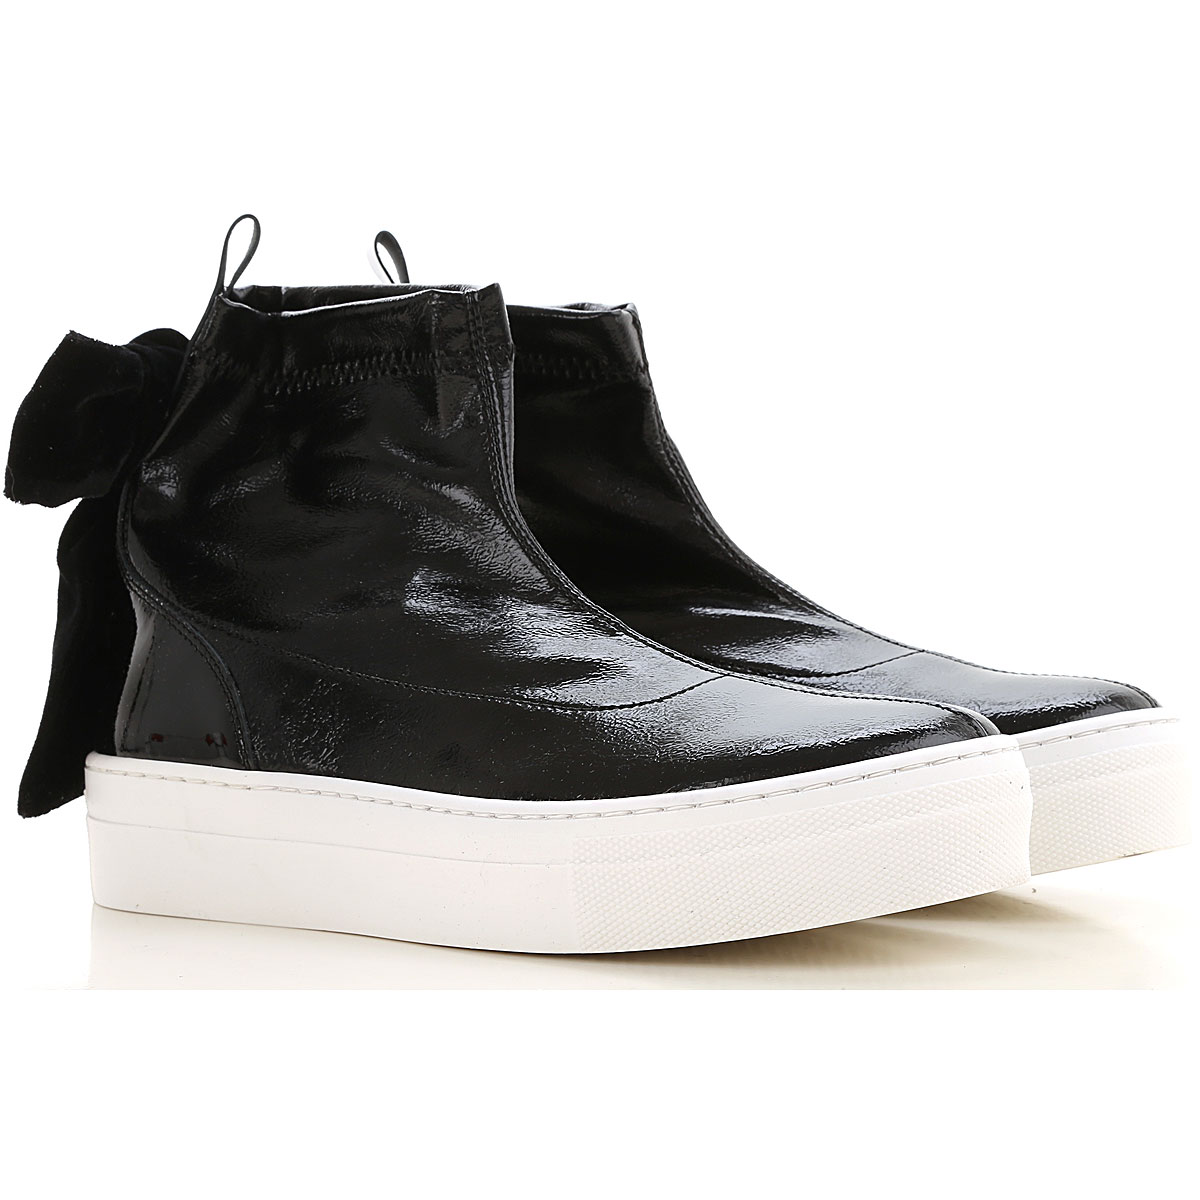 Florens Kids Shoes for Girls On Sale, Black, Leather, 2019, 28 29 30 31 32 33 34 35 36 37 38